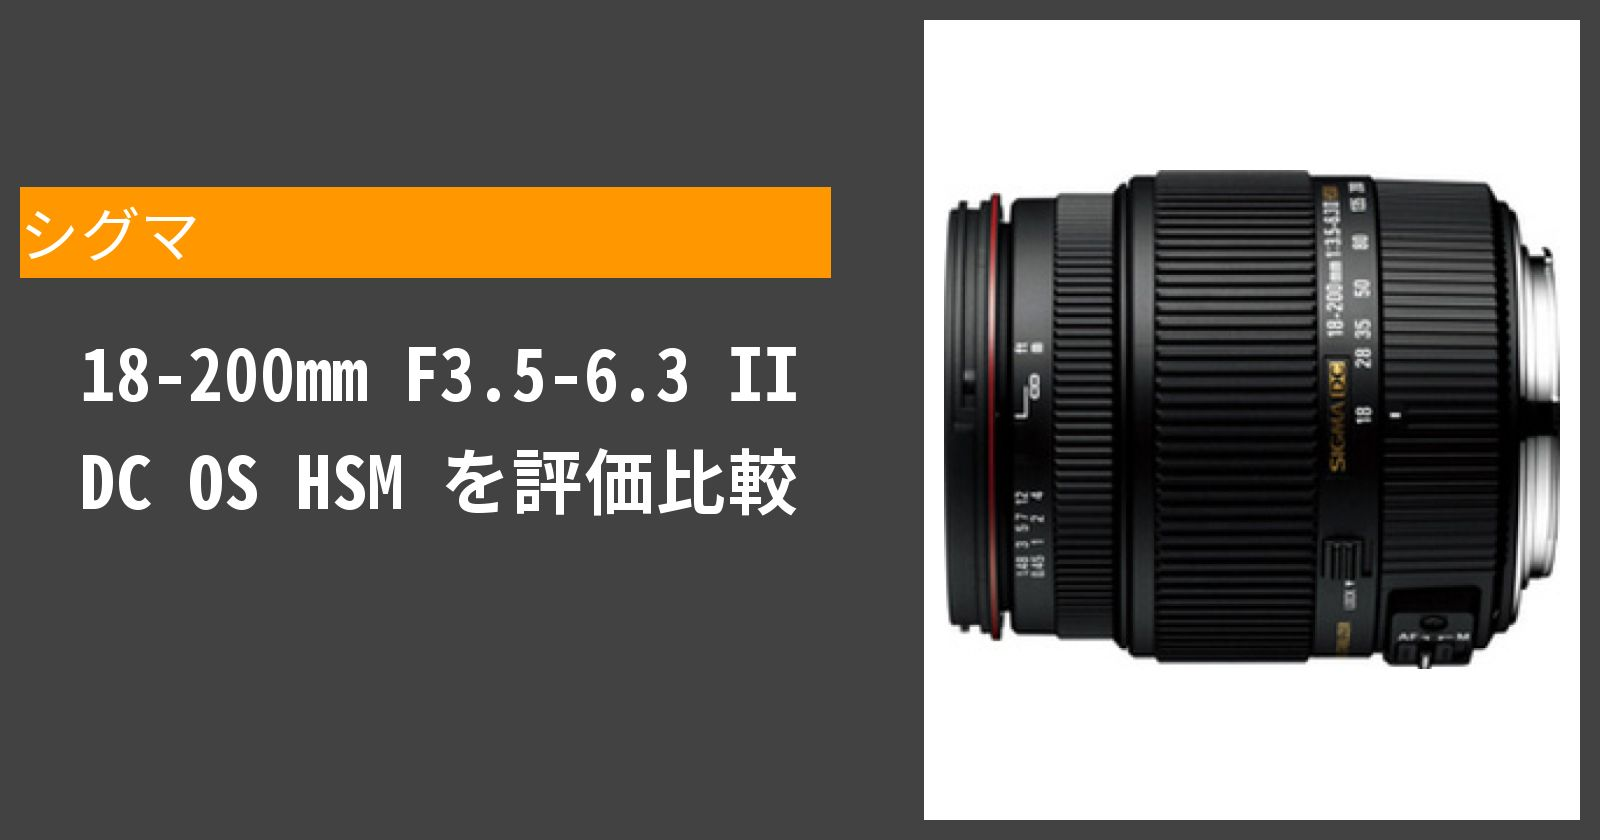 18-200mm F3.5-6.3 II DC OS HSMを徹底評価